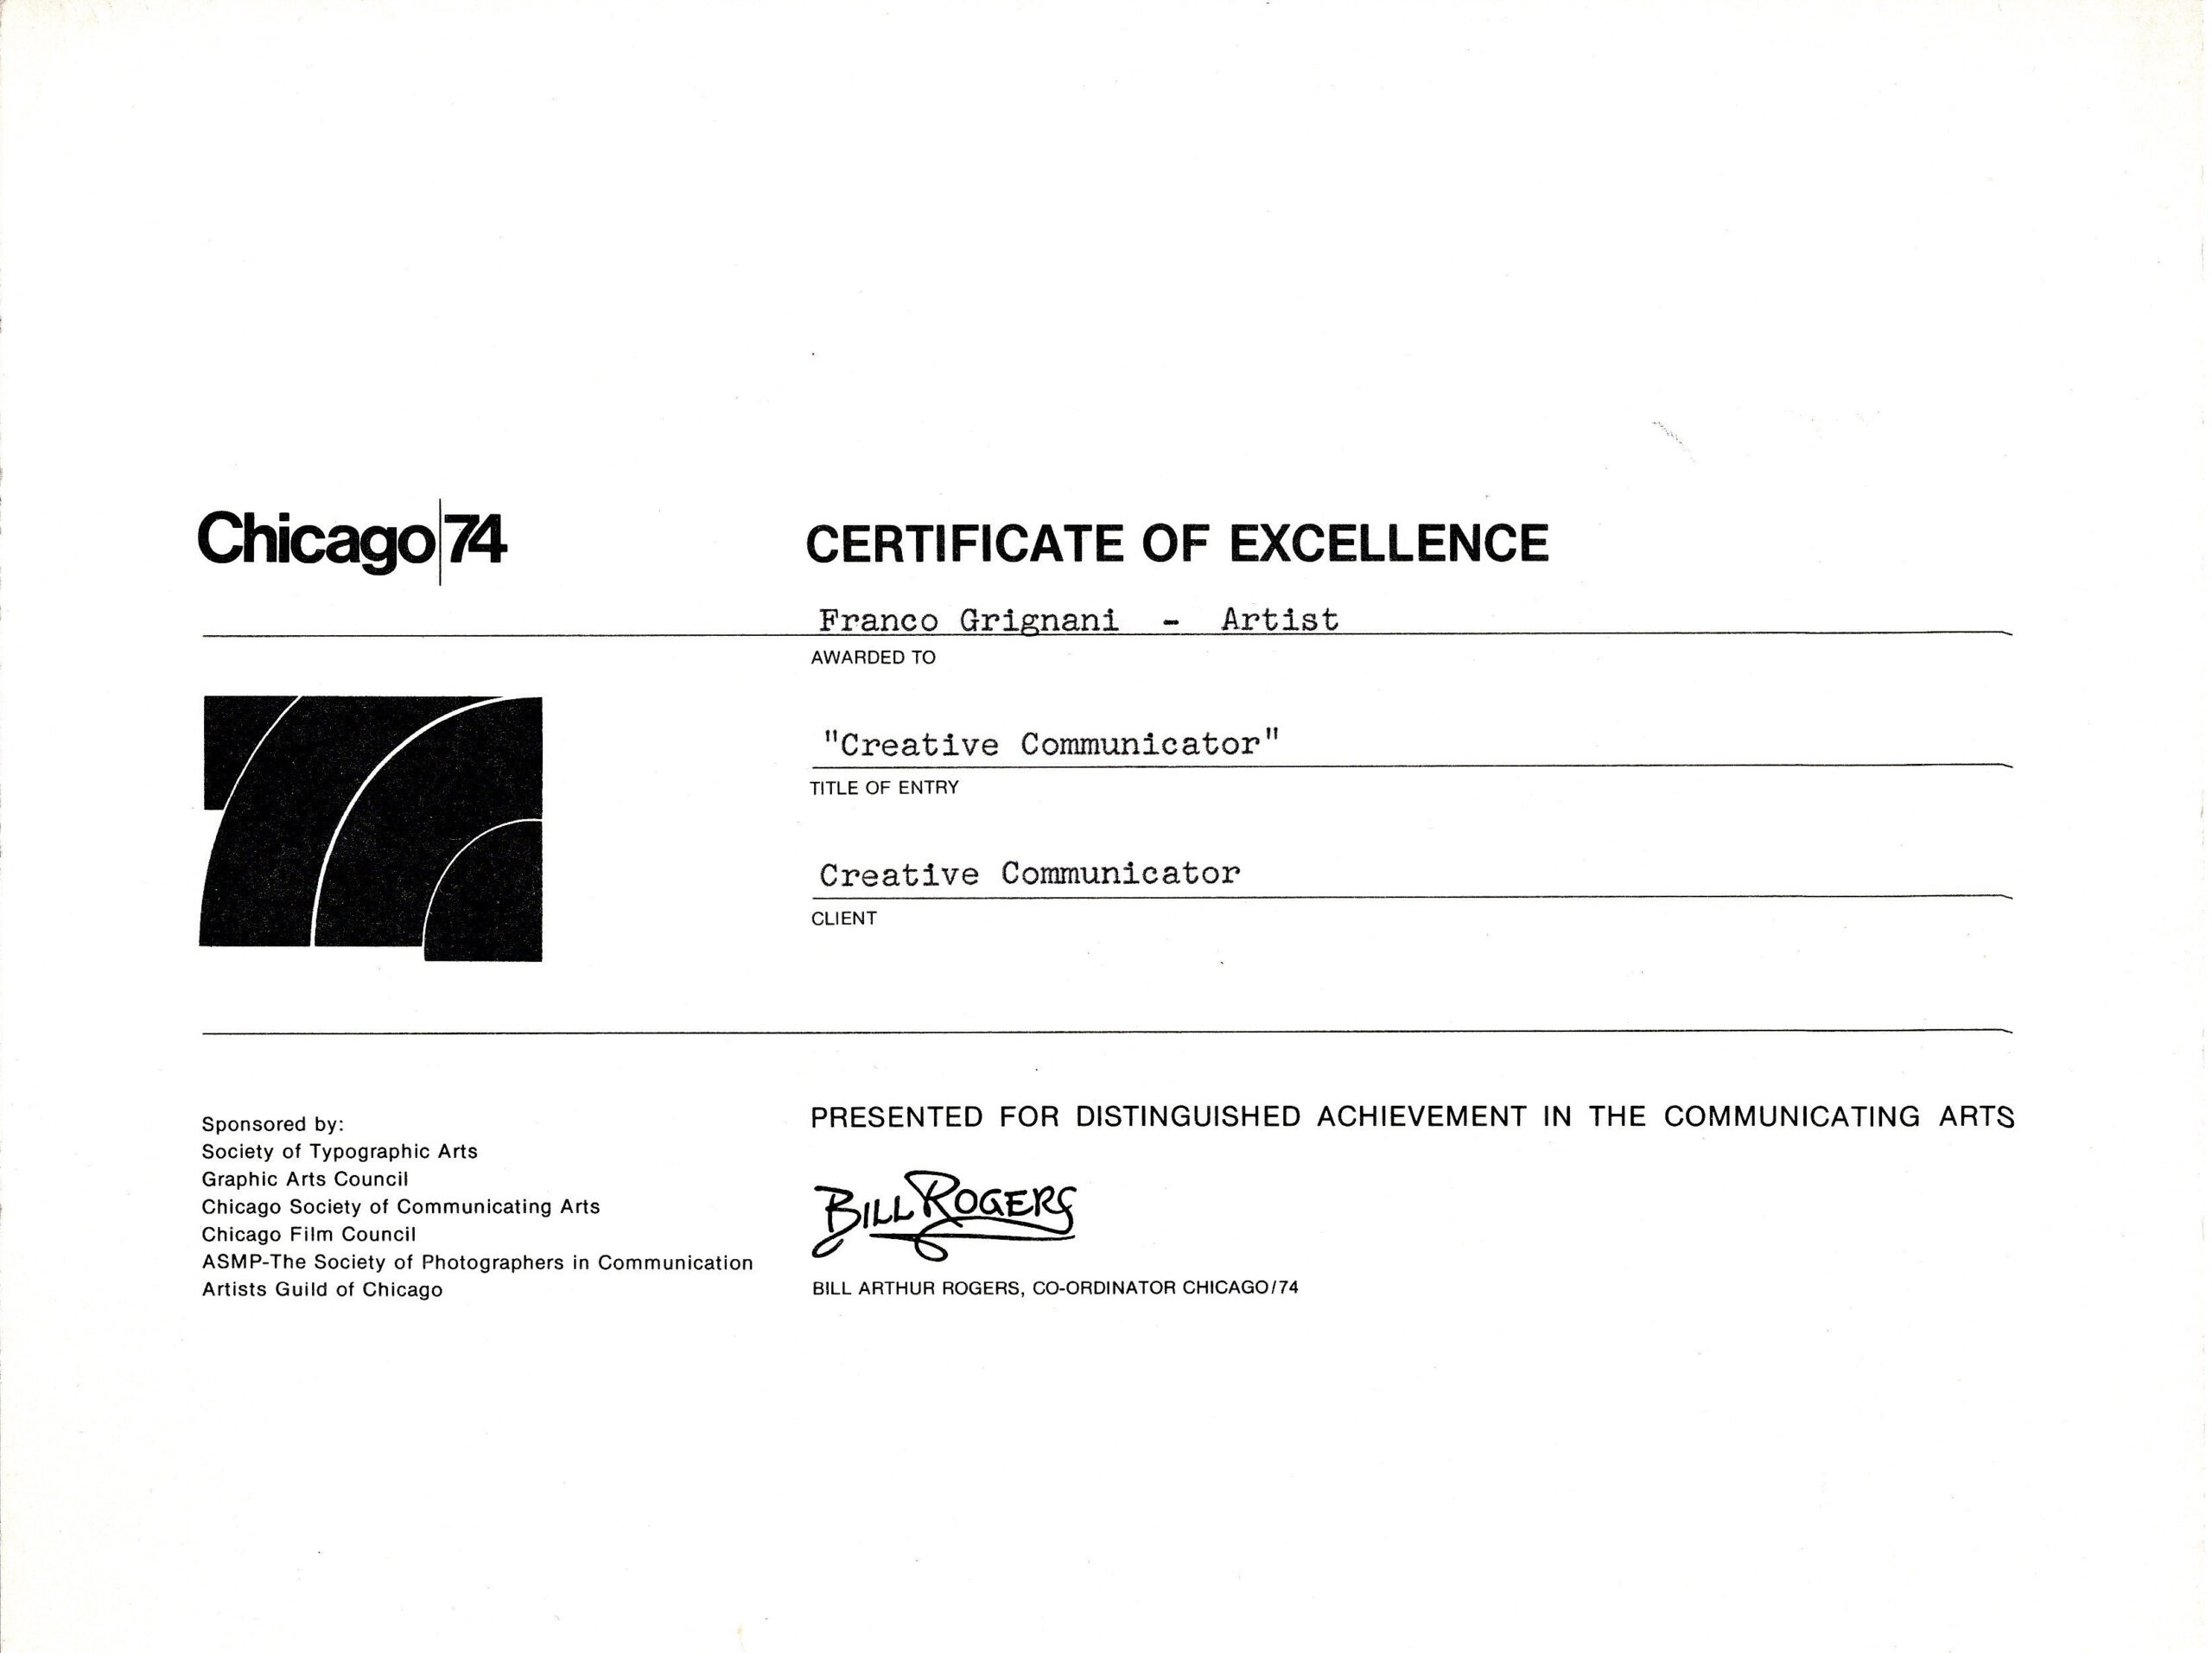 Franco Grignani, certificate of excellence, Chicago-74